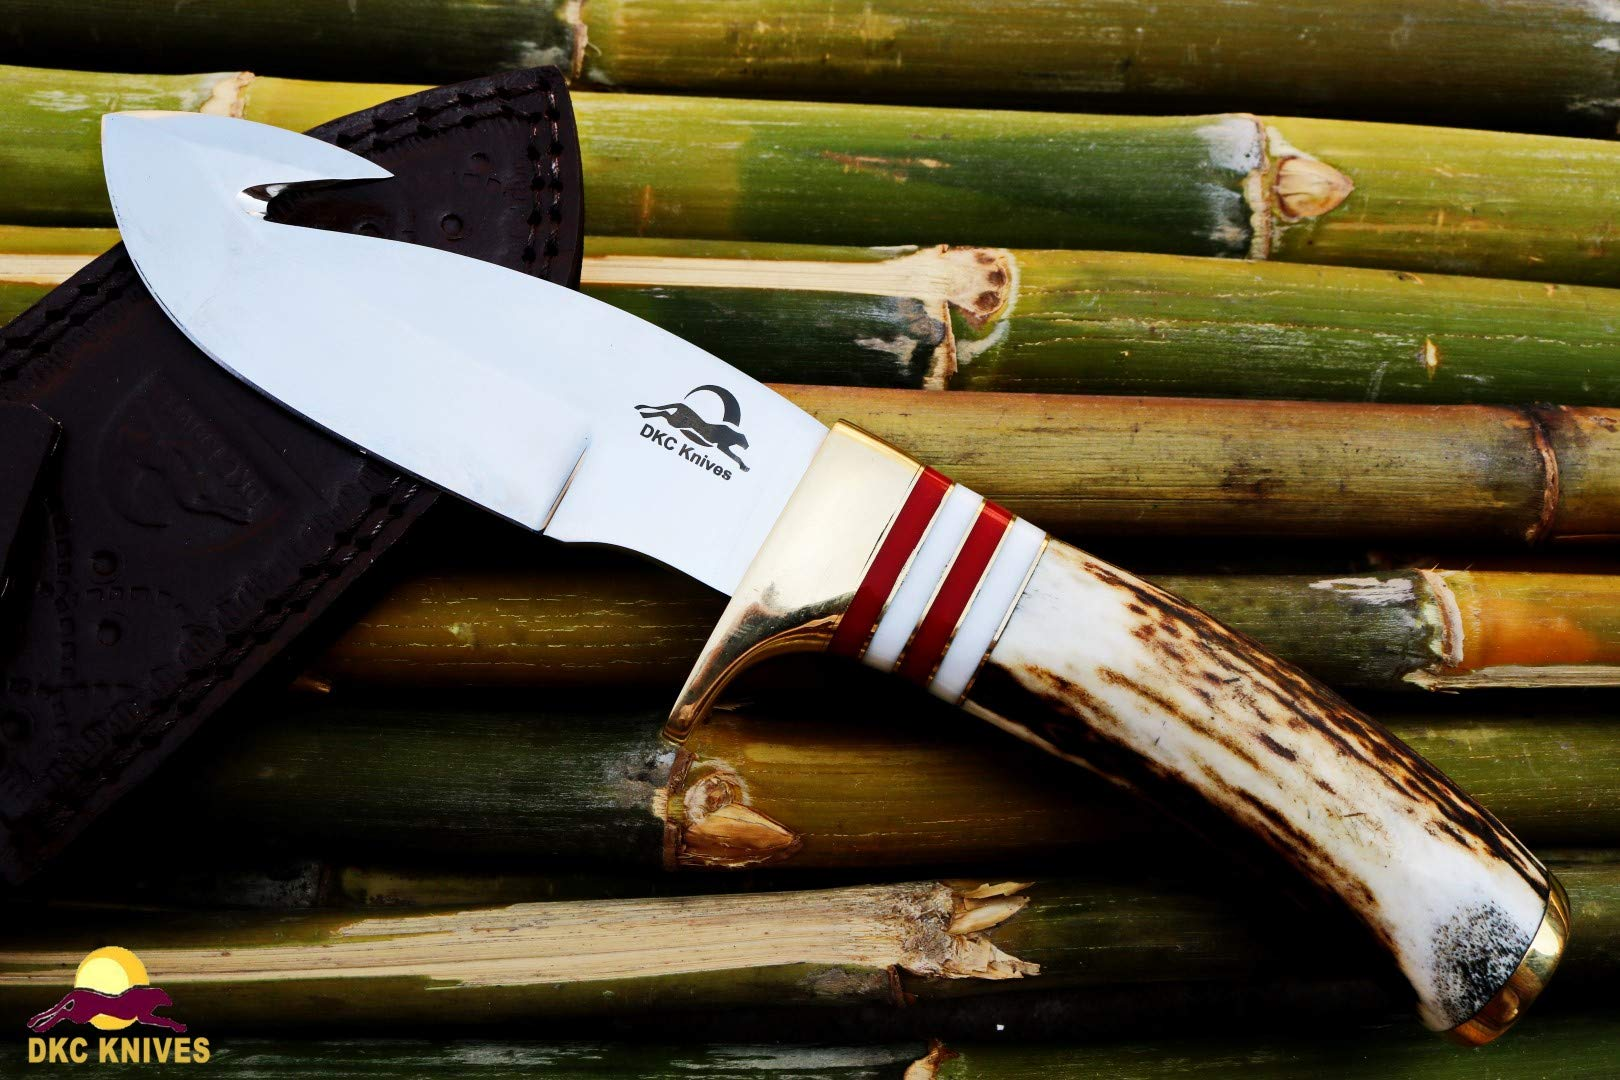 DKC Knives DKC-717-GH-440c Bald Eagle Gut Hook 440c Stainless Steel Bowie Hunting Handmade Knife Stag Horn Fixed Blade 10'' Long 4.75'' Blade 10oz